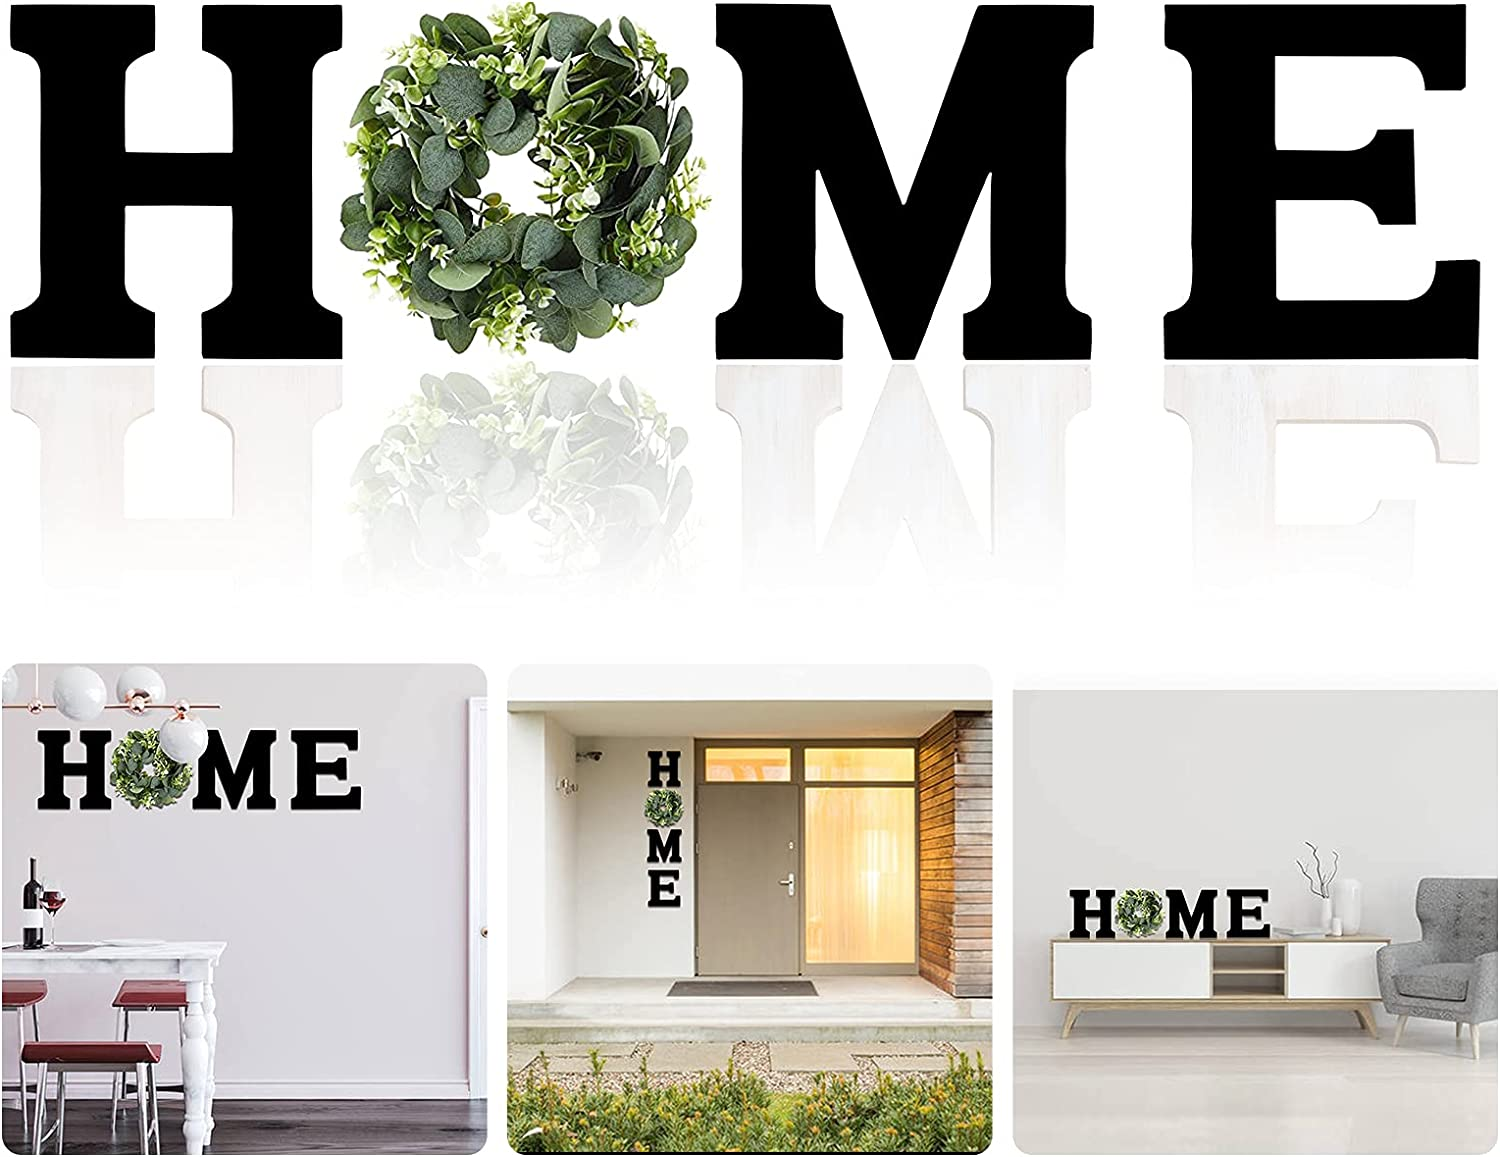 Wooden Home Sign Wall Hanging Decoration Home Letter Wall Decor-Artificial Eucalyptus Wreath Wood Hanging Wall Art Decorations for Living Room Bedroom Outdoor (Black)